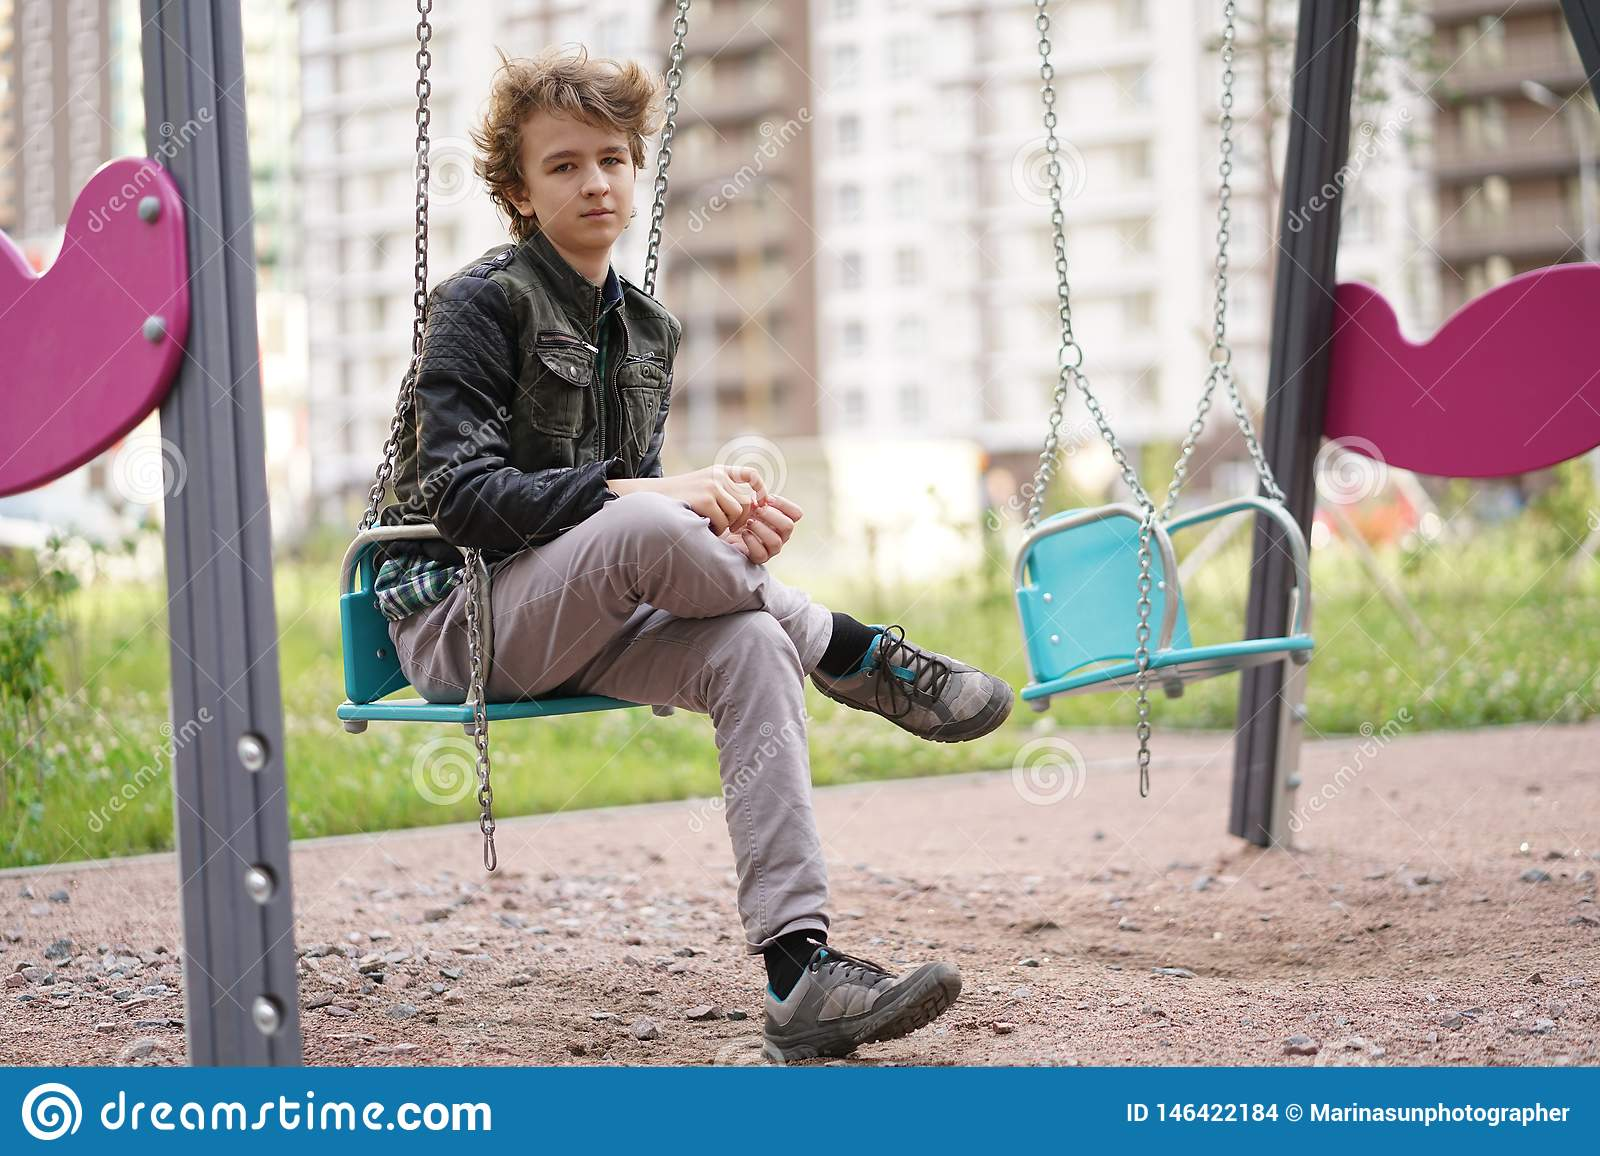 Sad lonely teenager outdoor on the Playground. the difficulties of adolescence in communication concept.